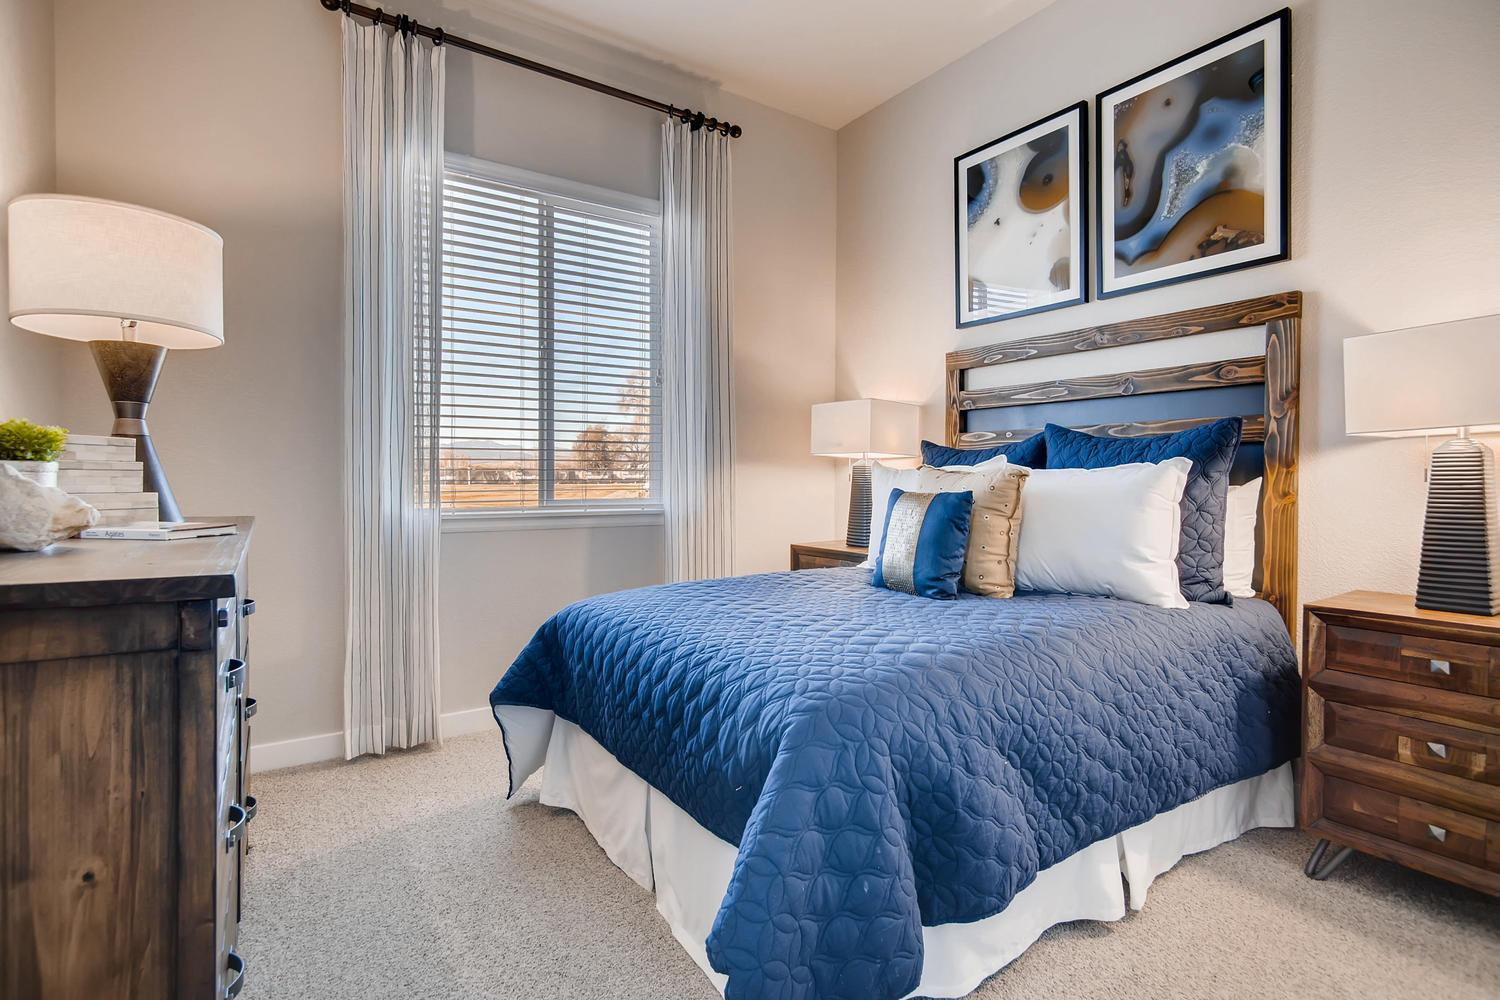 Bedroom featured in the Minturn - Enclave at Prairie Star By RichfieldHomes